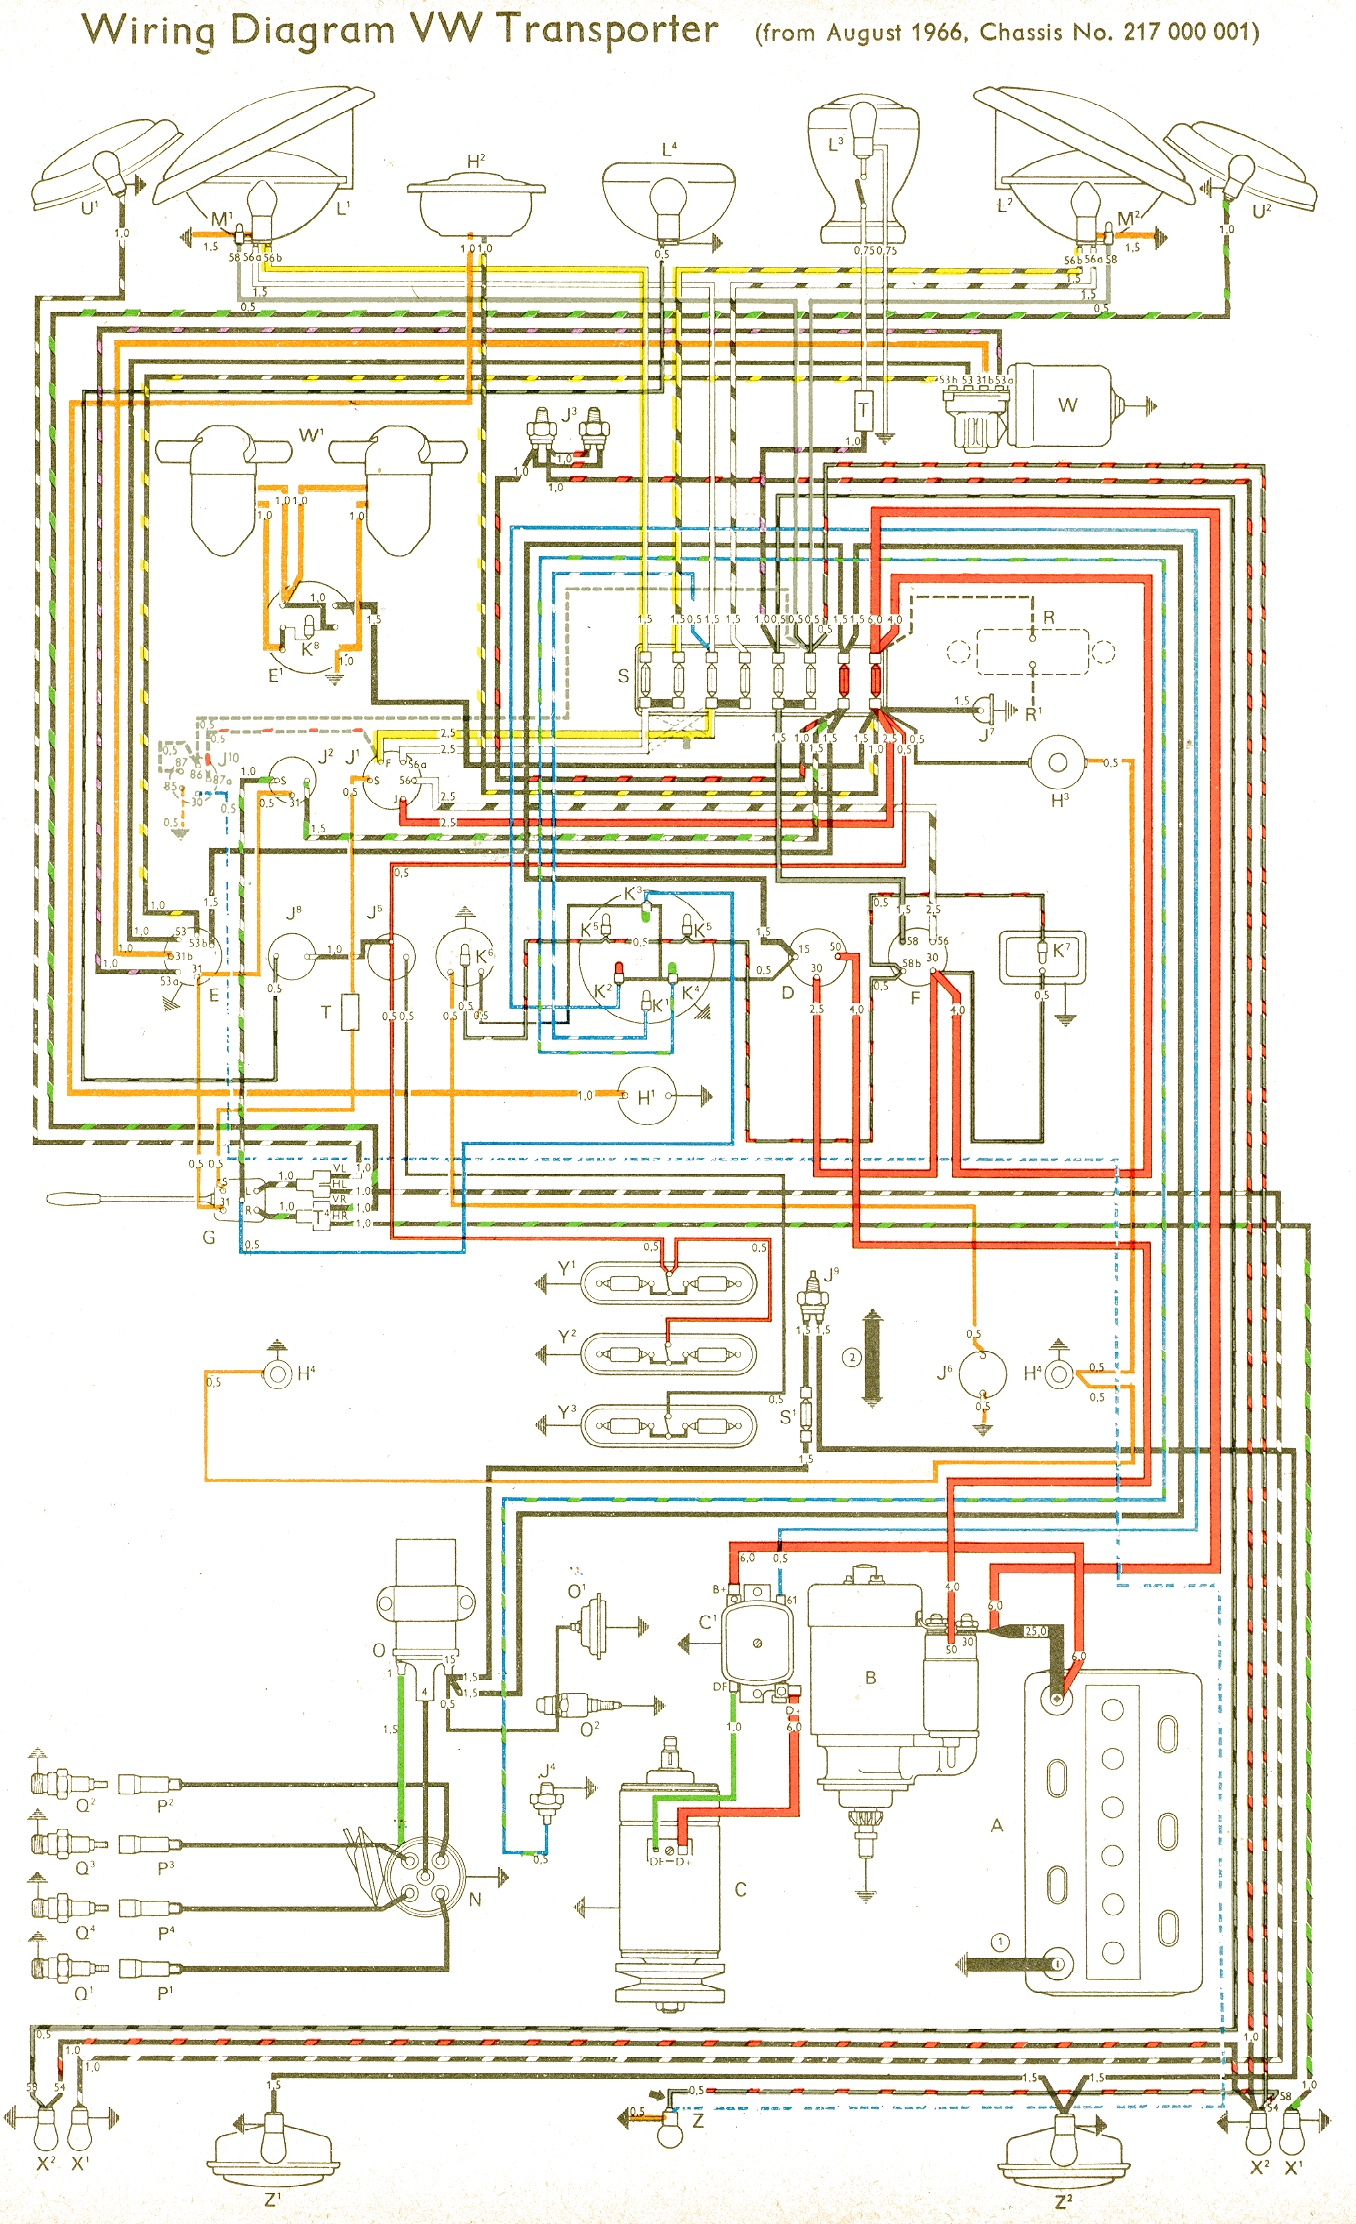 Car Overhead in addition Sfvsfsvs furthermore Graphic moreover B F E Fbc as well Suzuki Cultus Mini Fuse Box Diagram. on 2006 suzuki forenza radio wiring diagram